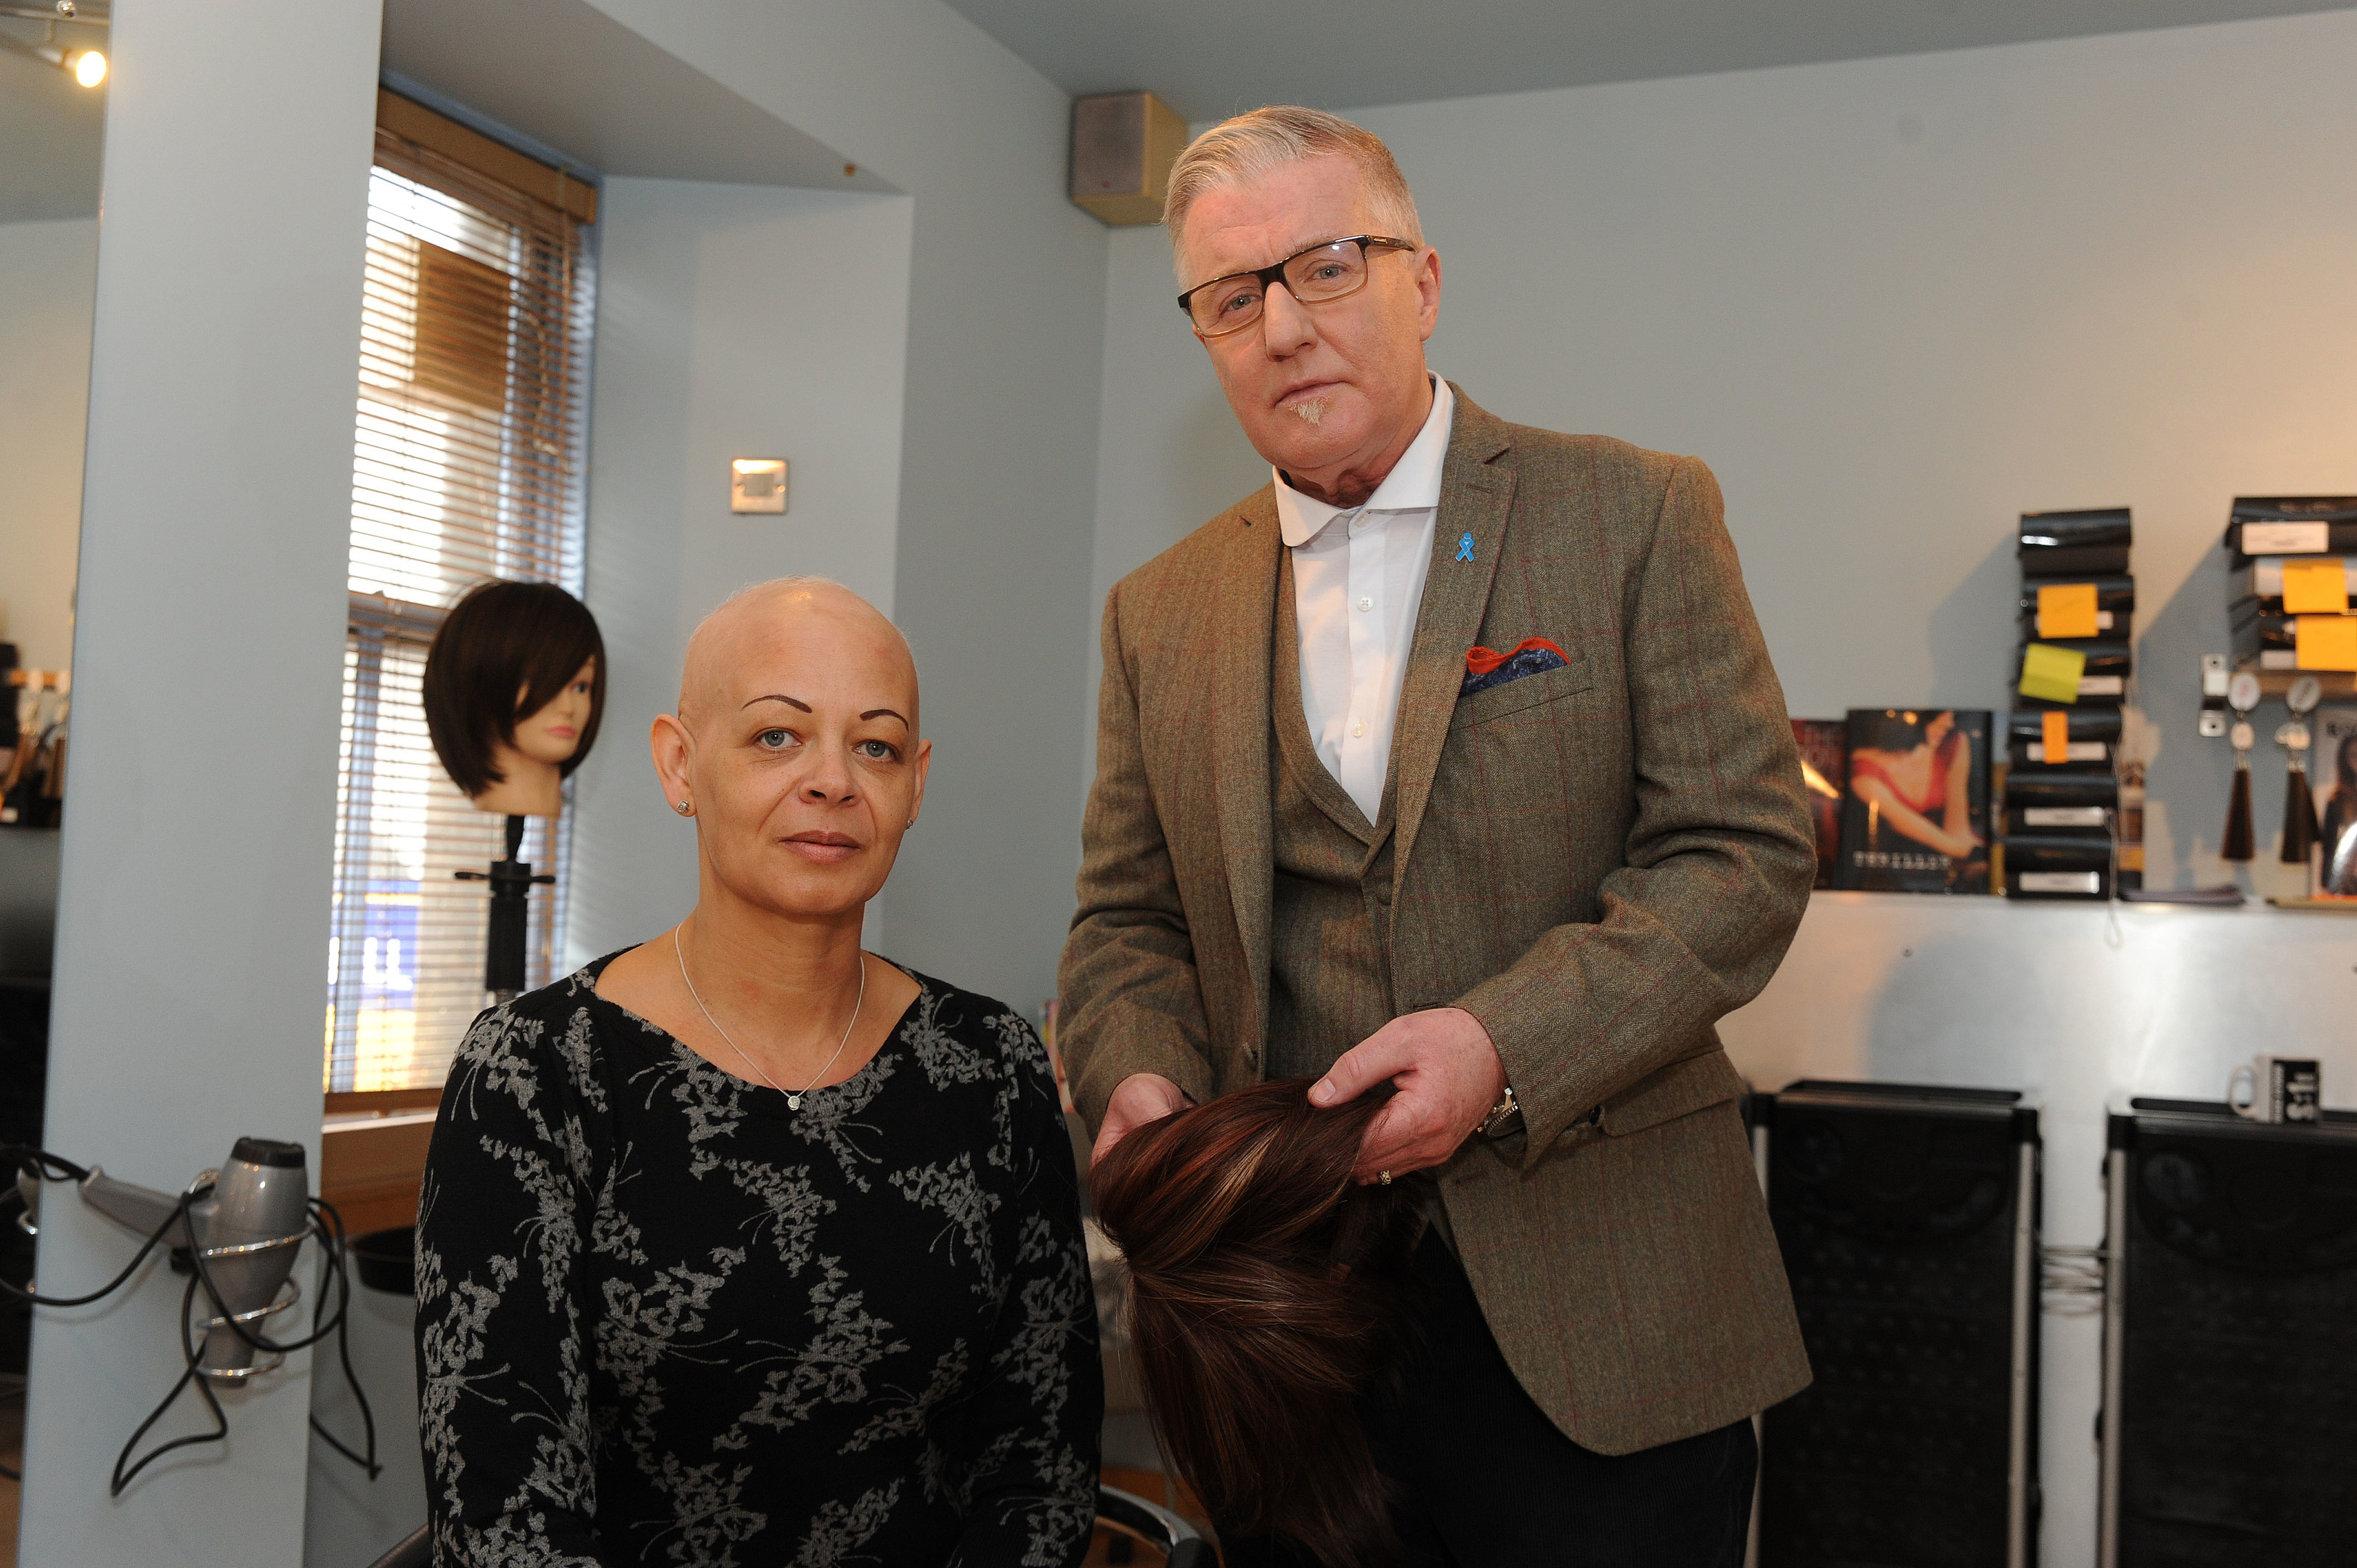 Douglas with client Andrea Duncan when the service launched in 2014.